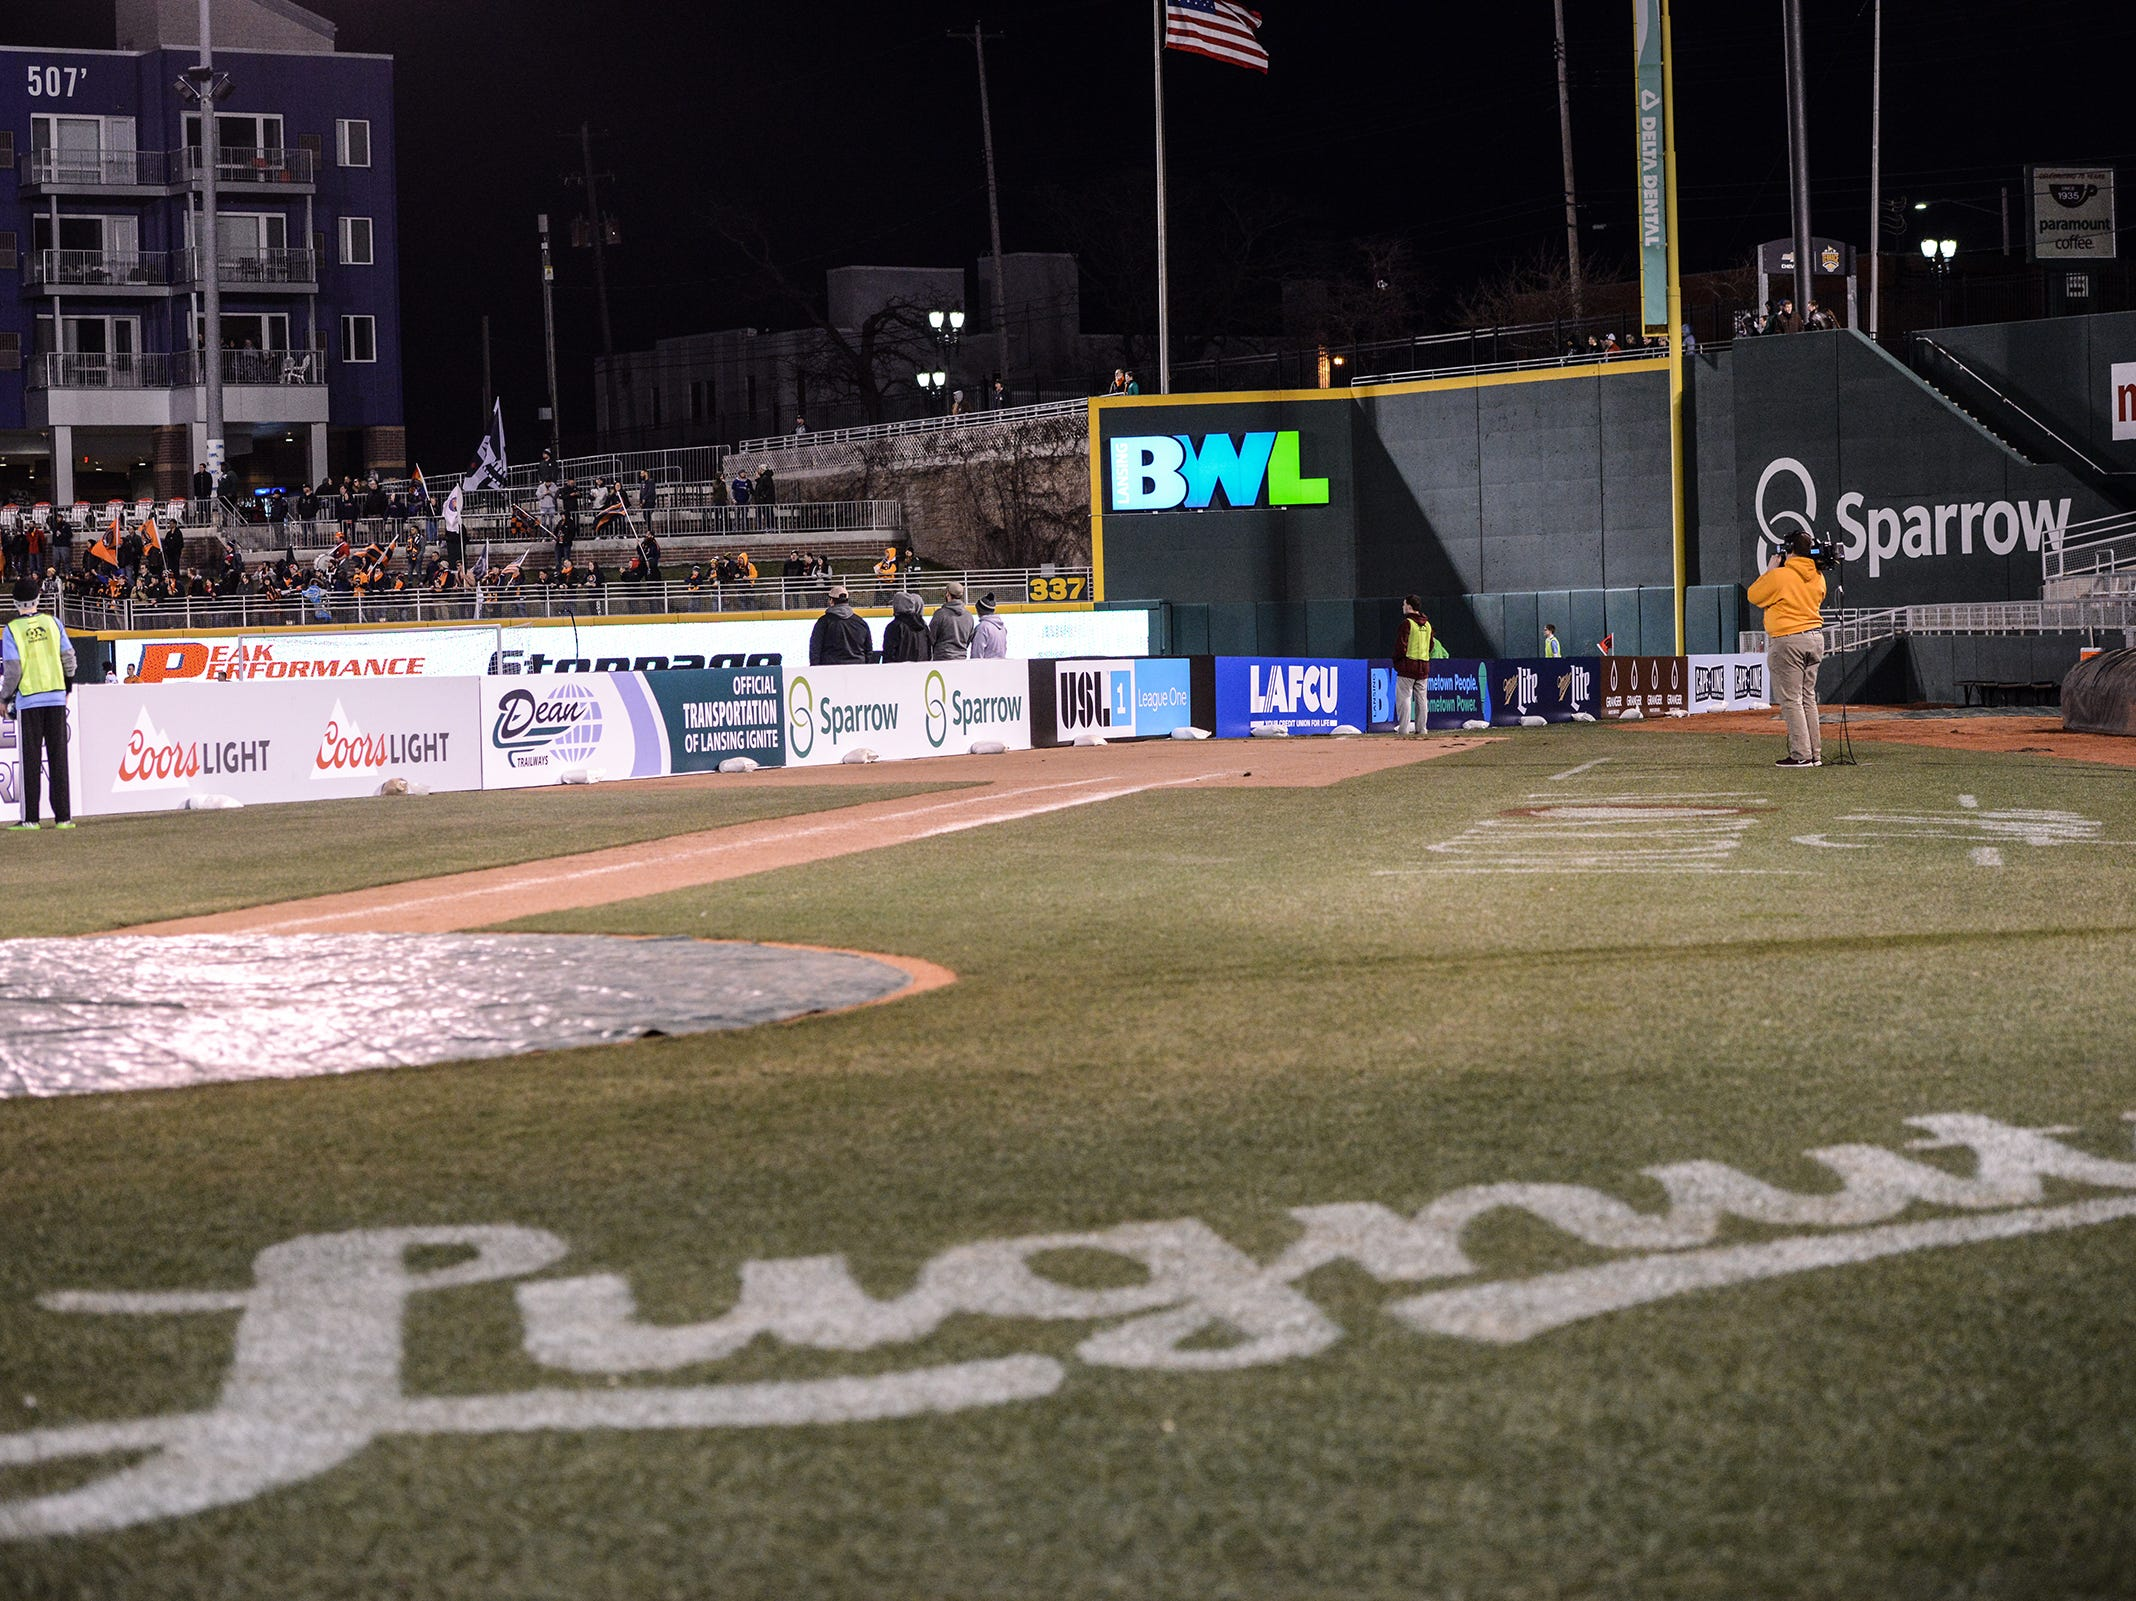 Cooley Law Stadium is converted to a Lansing Ignite soccer field. The photo shows the first base line with the field starting in the infield.